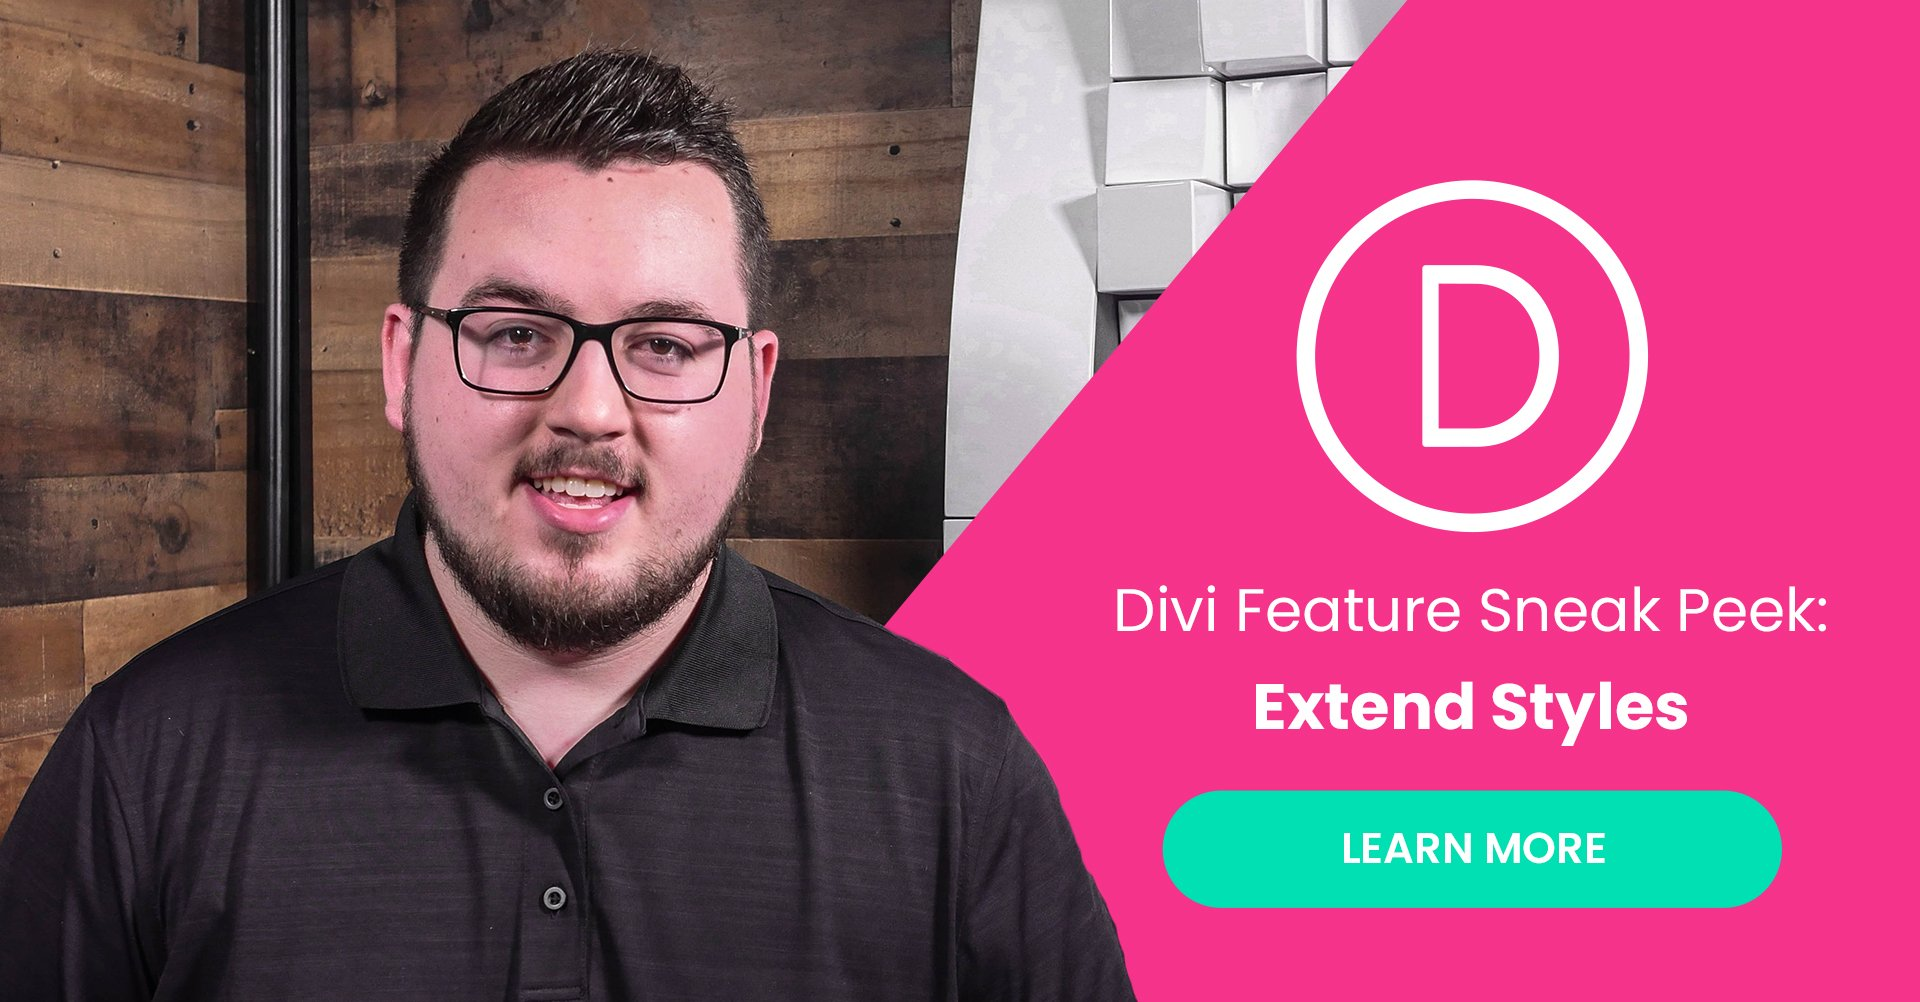 Divi Feature Sneak Peek: Extend Styles